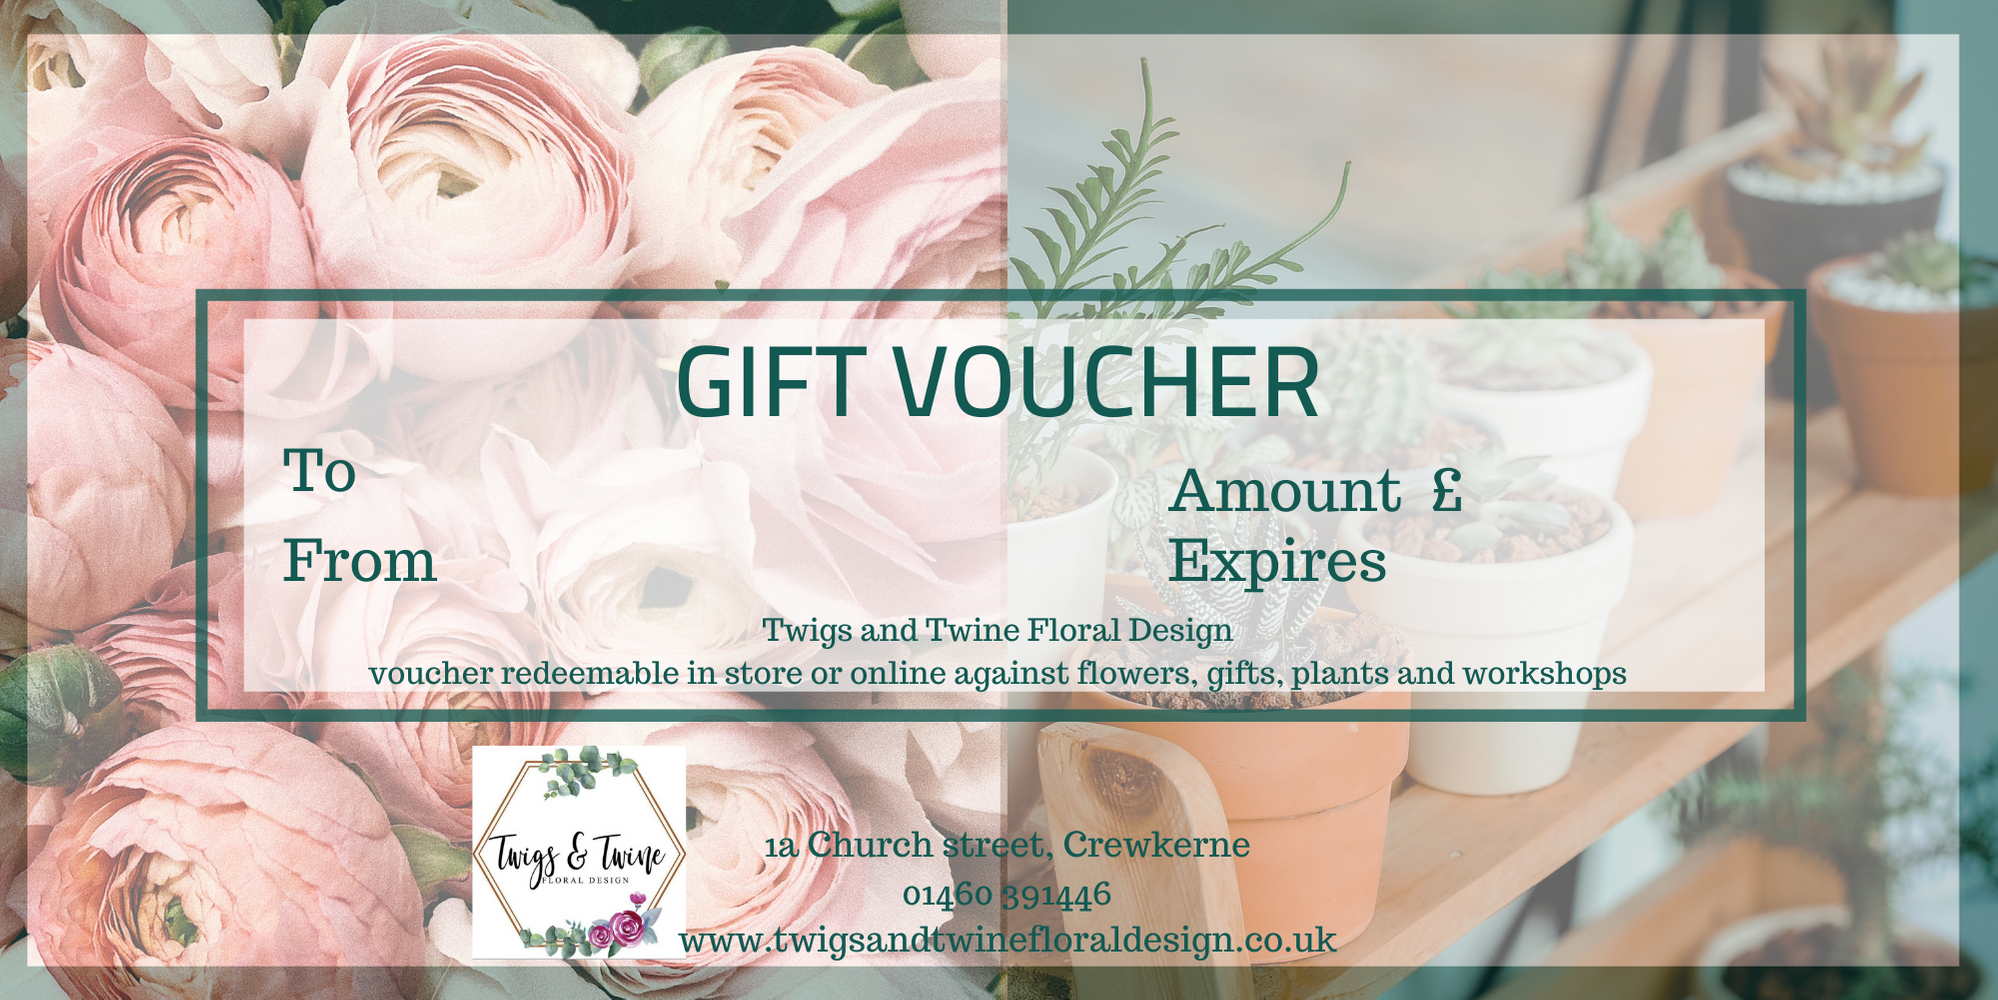 £50 Twigs and Twine Gift Voucher